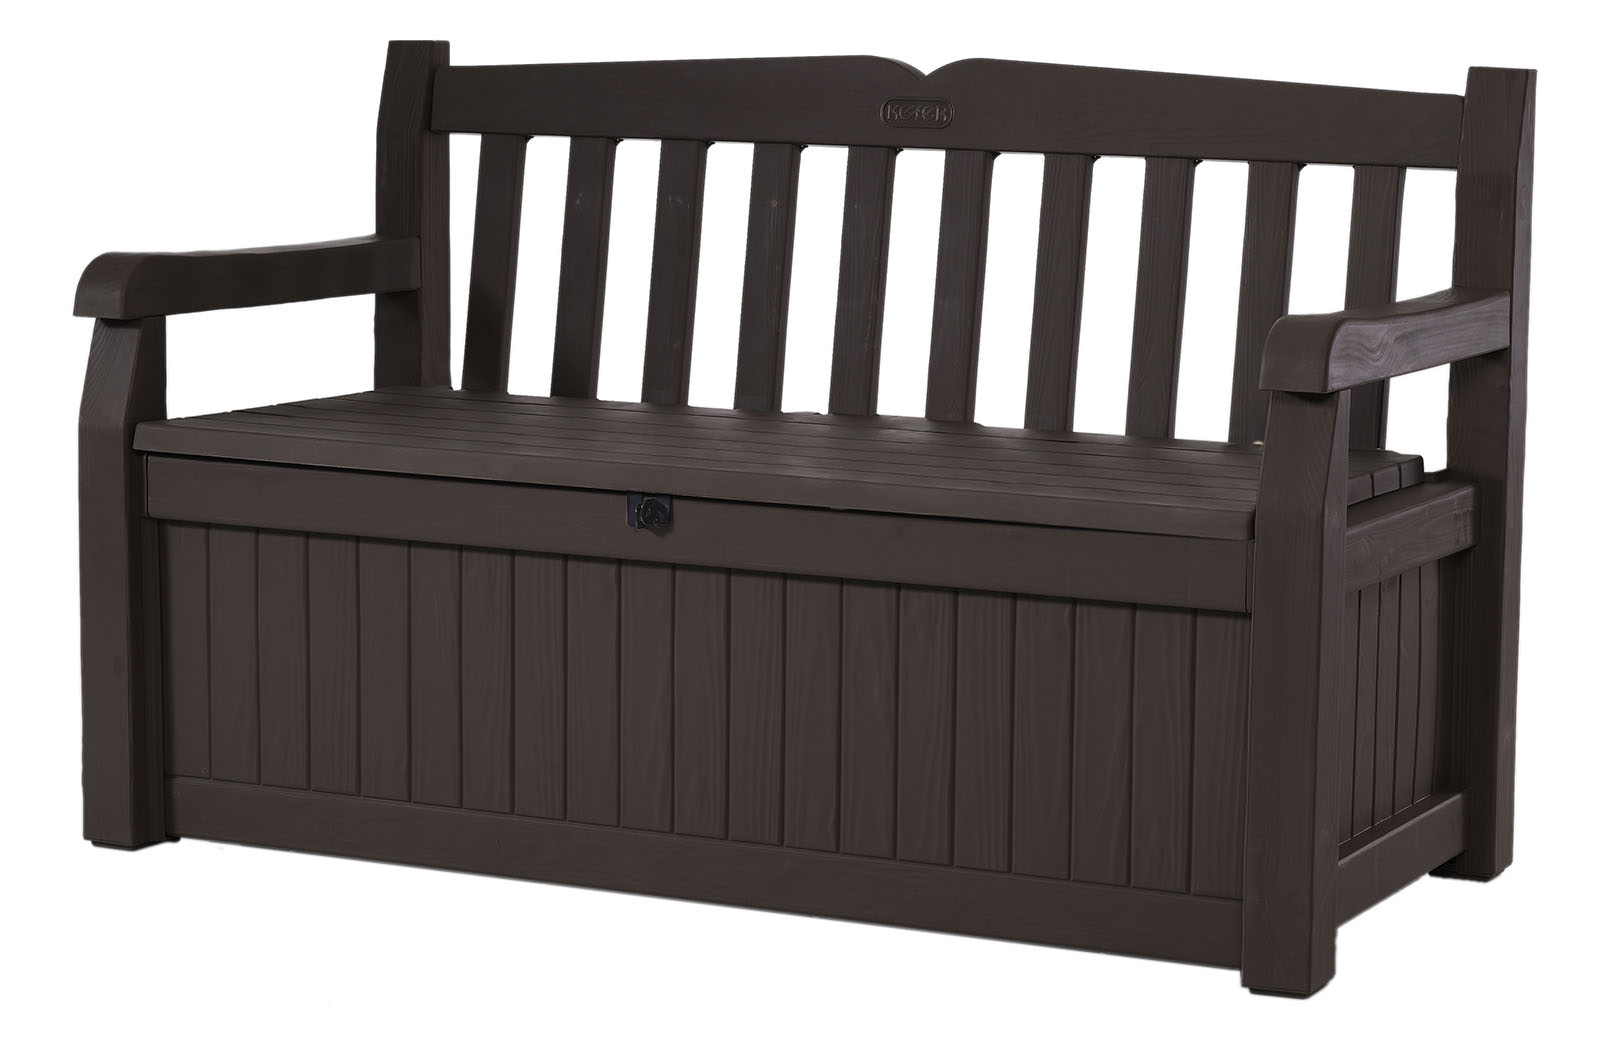 Product Image Keter Eden Outdoor Resin Storage Bench, All Weather Plastic  Seating And Storage, 70